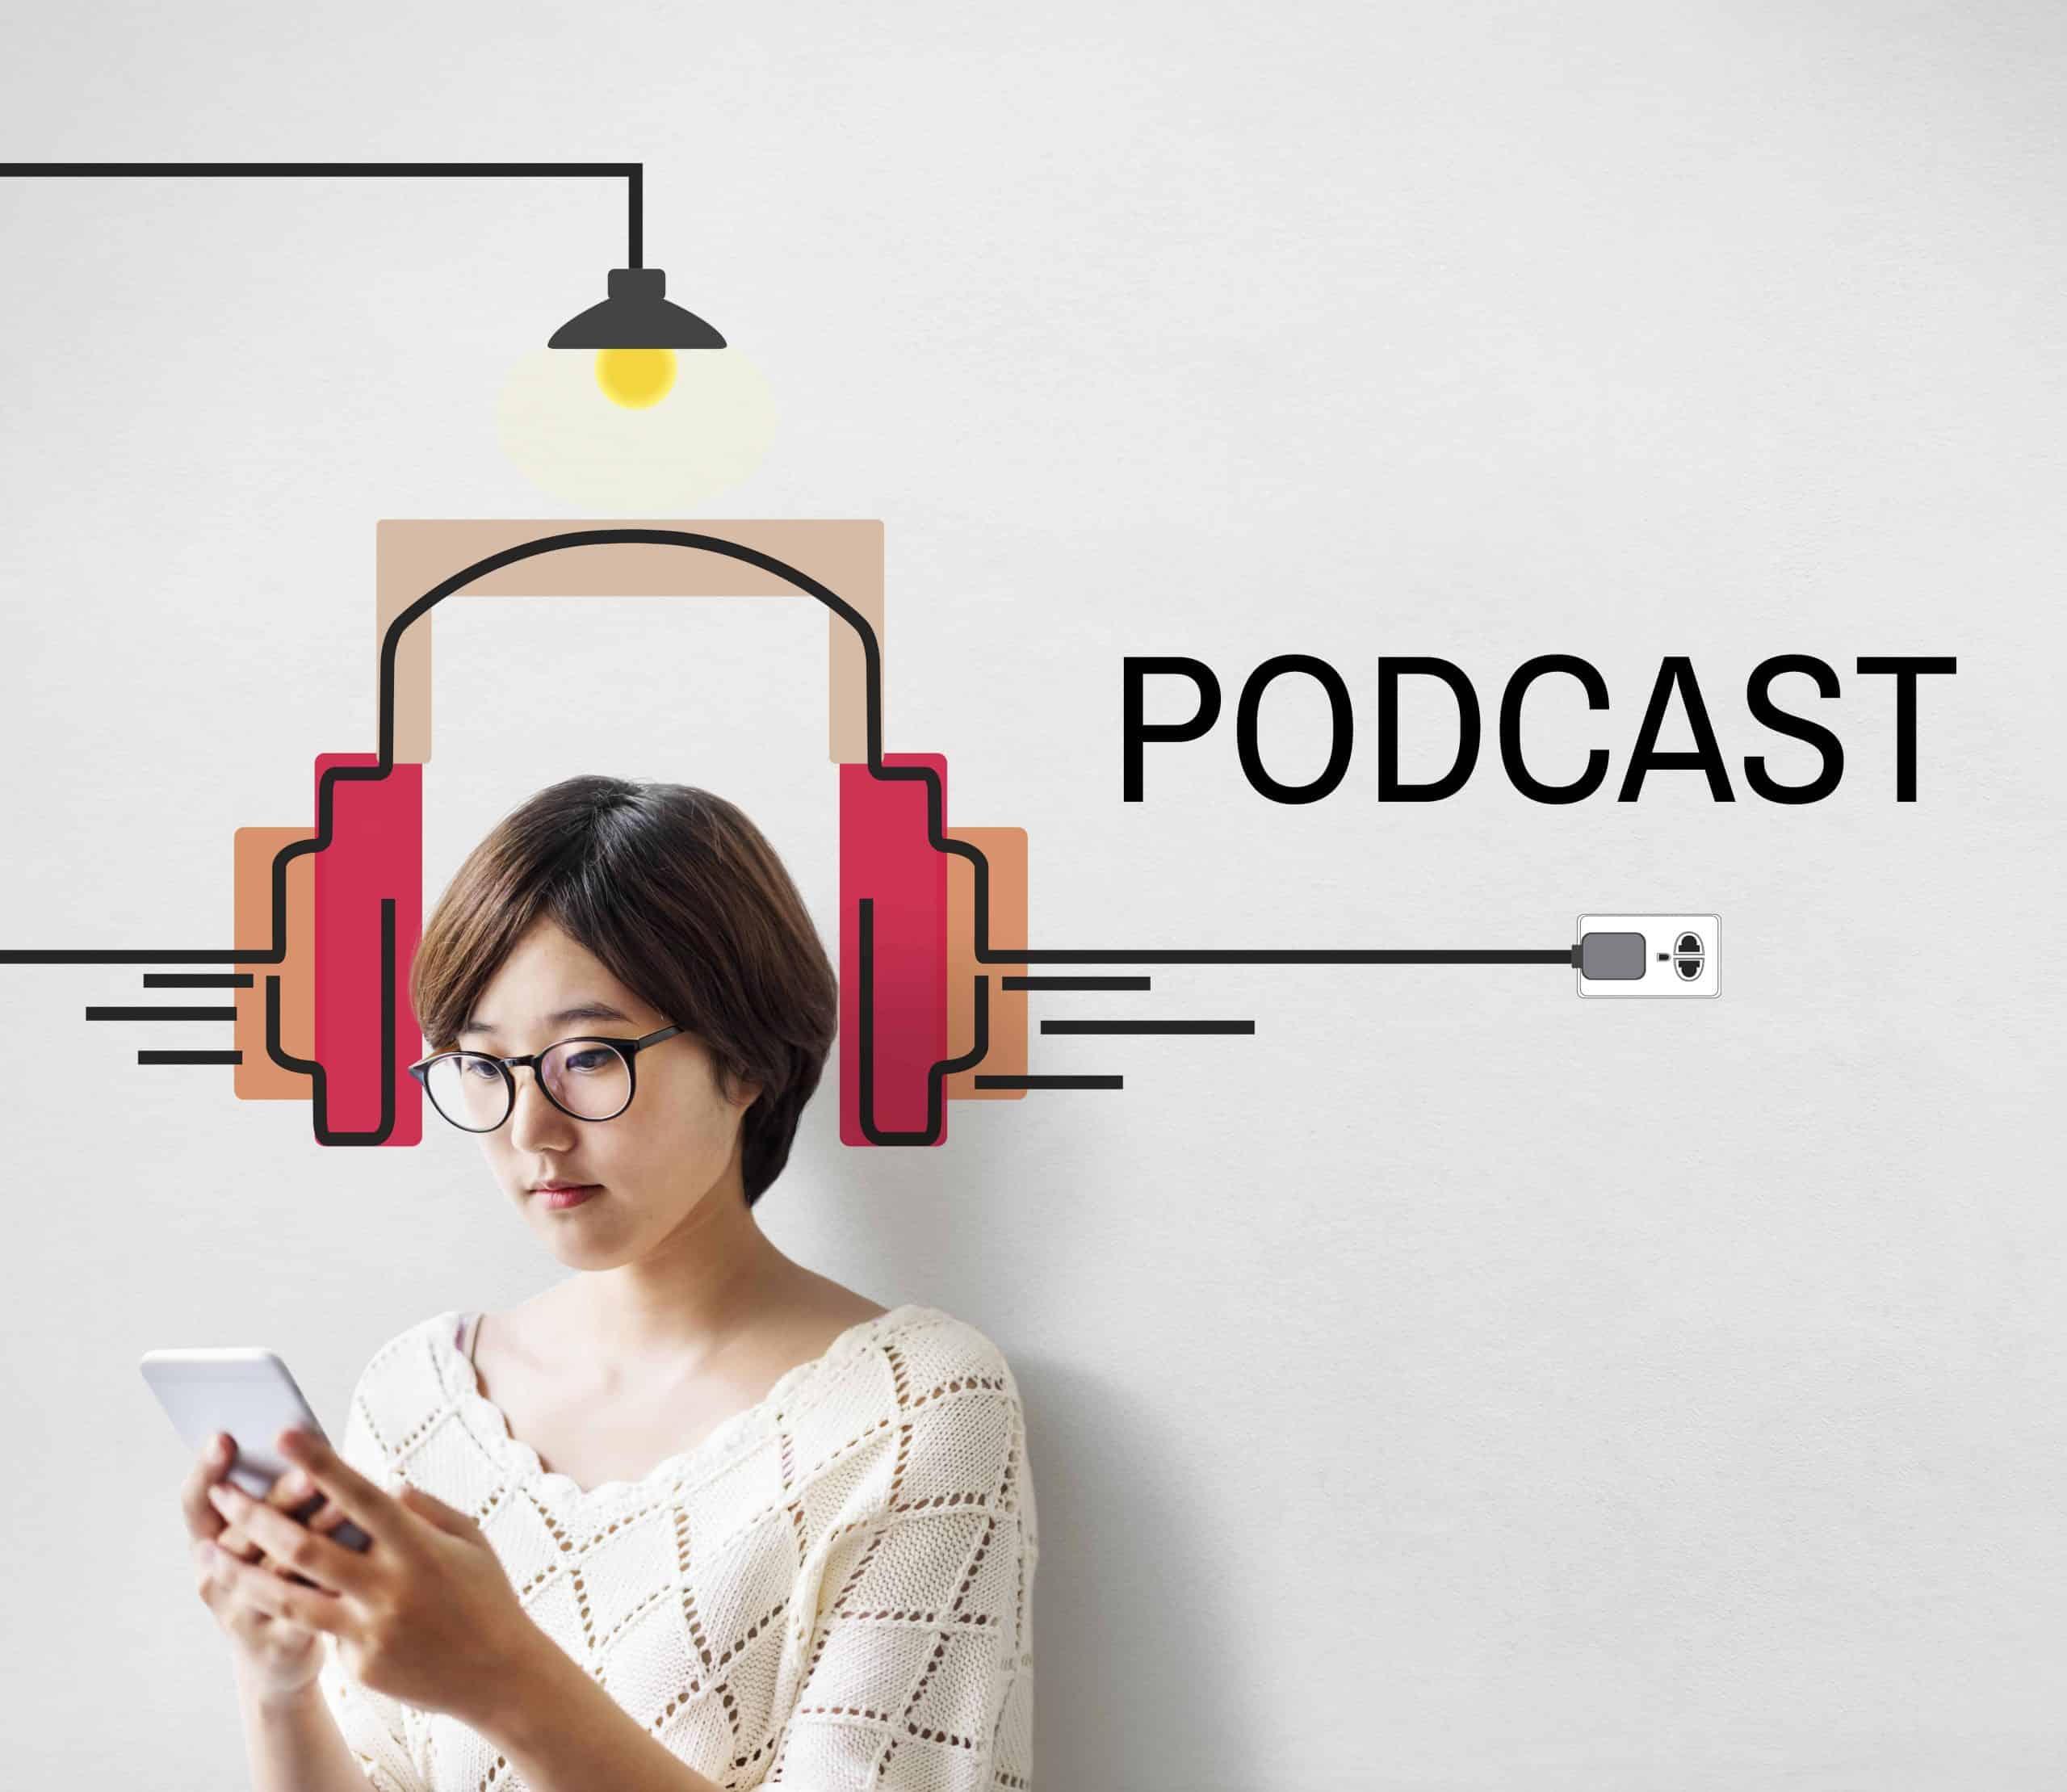 Basic podcast tips